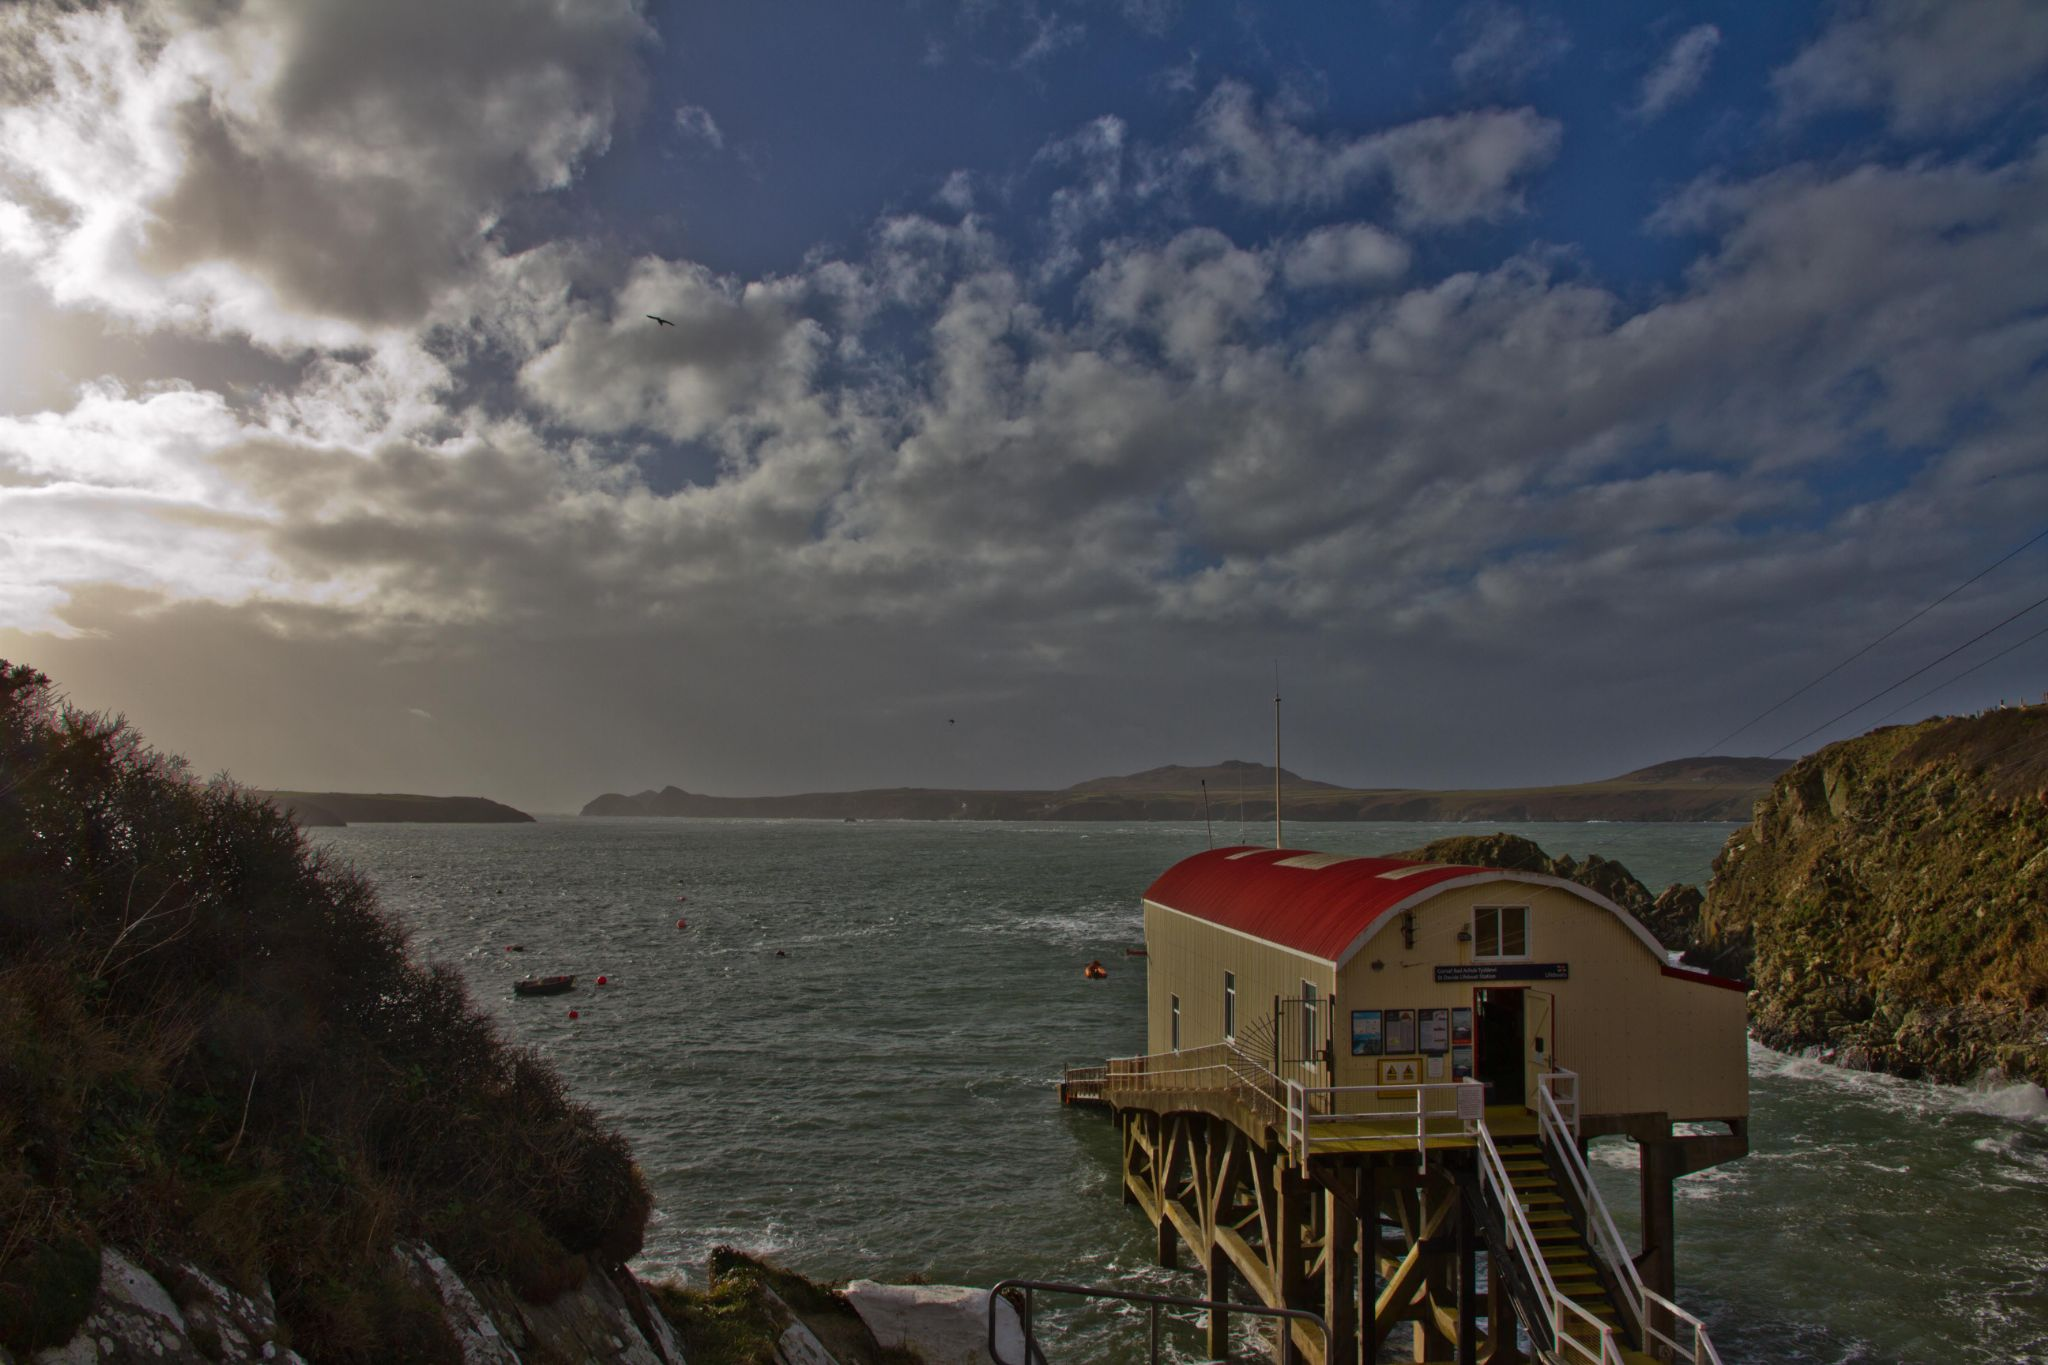 Lifeboat station by darron.sandell